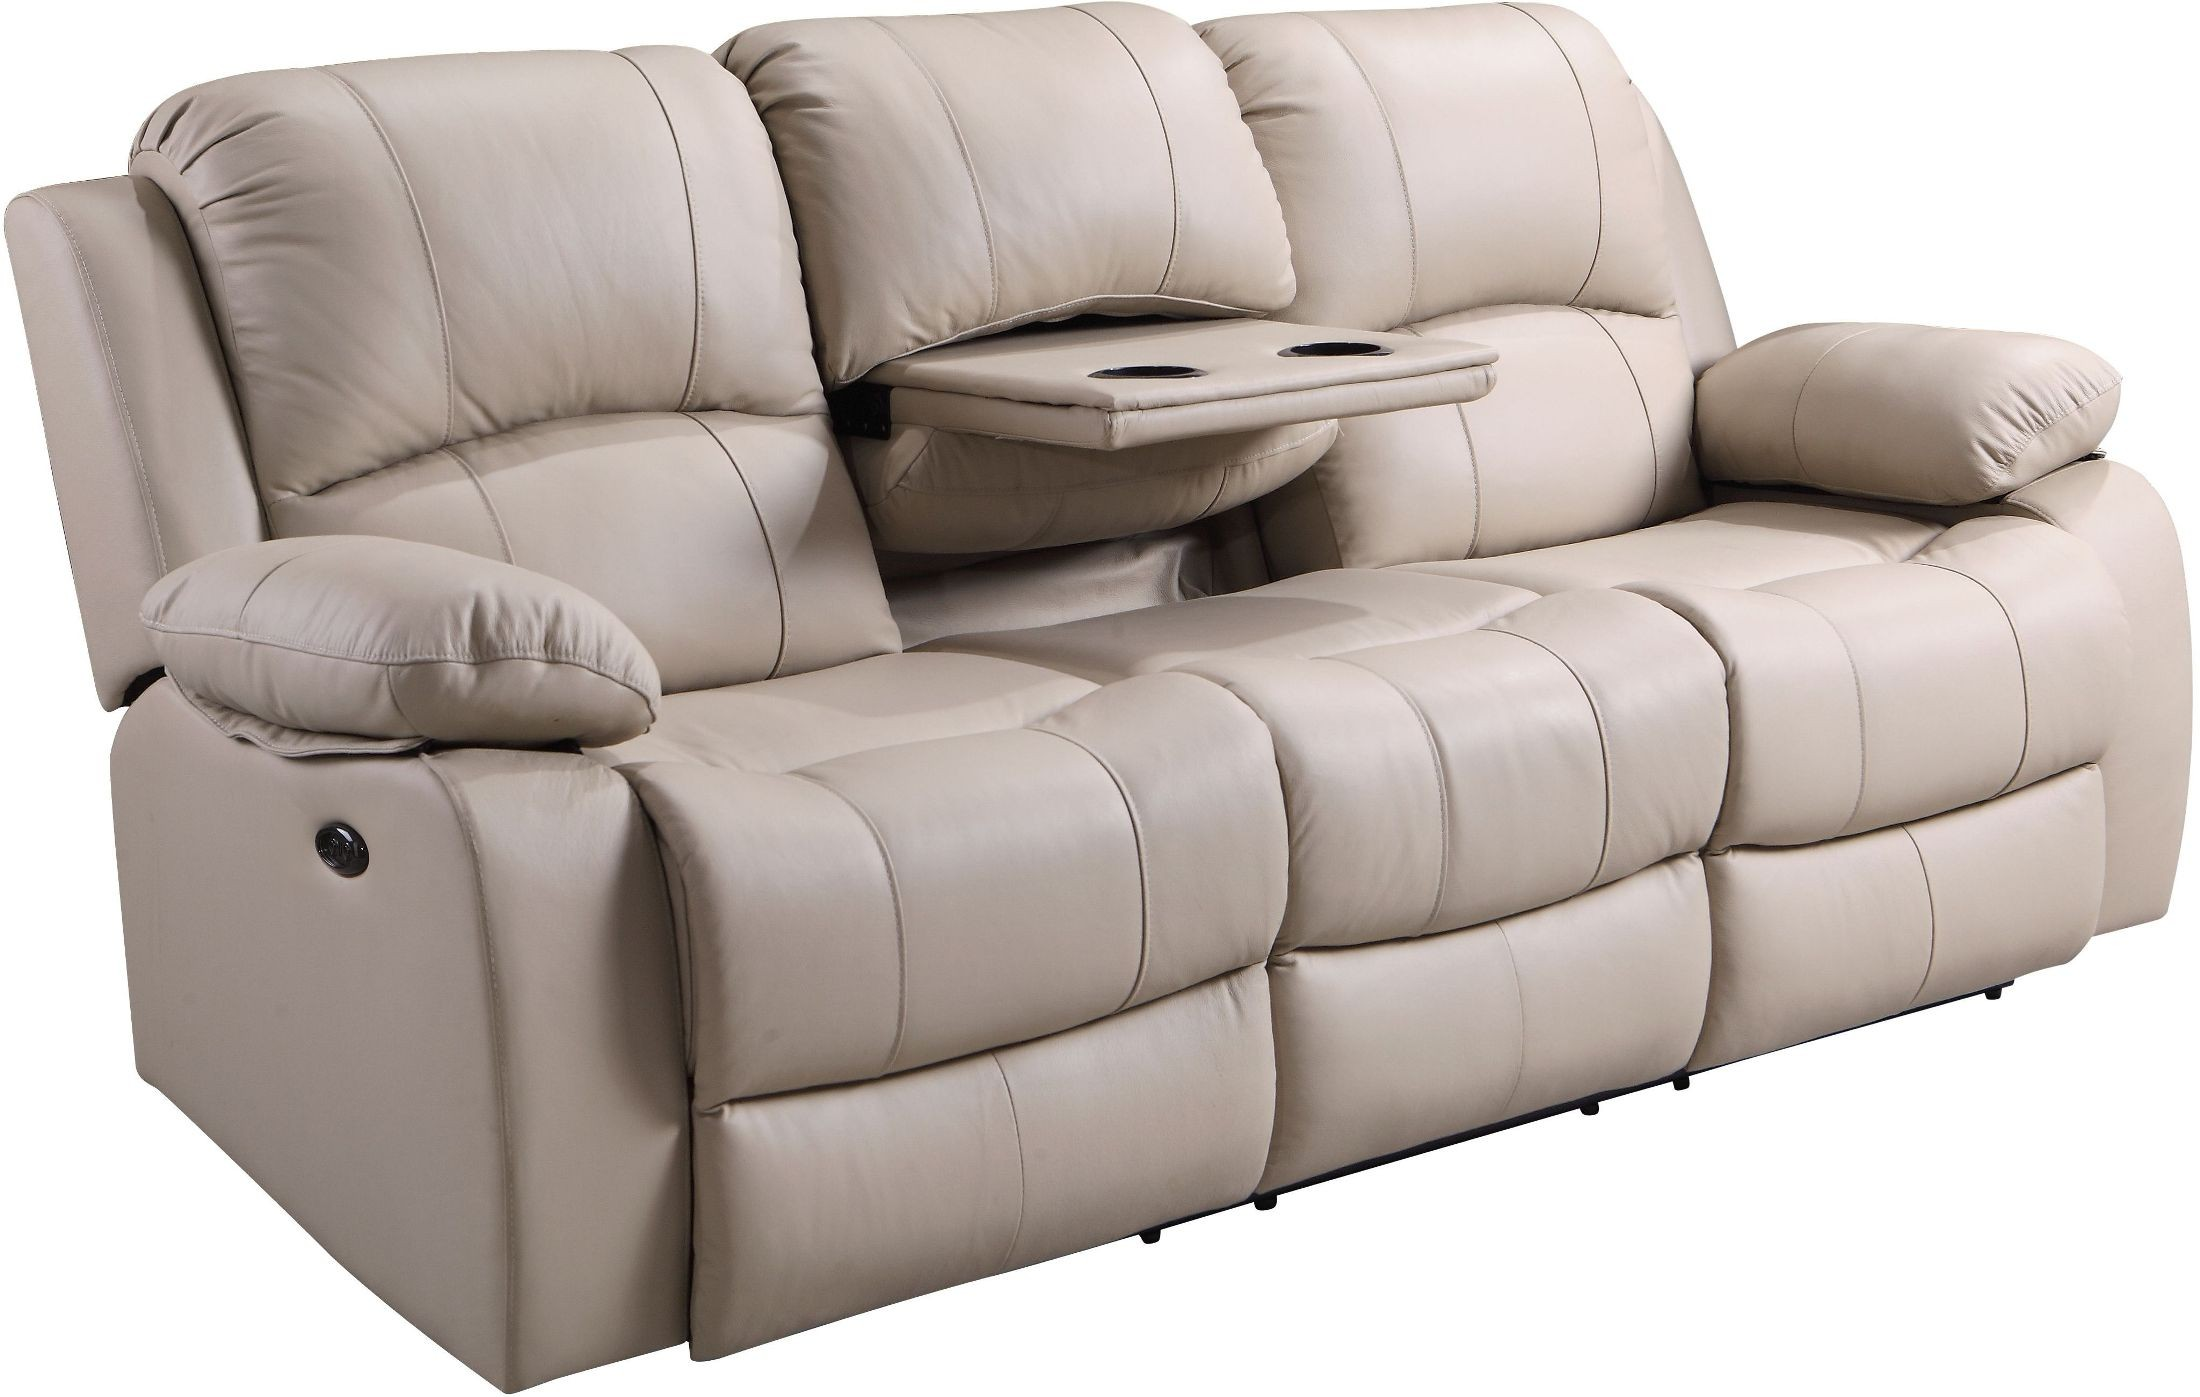 Sofa And Chair Set Sale